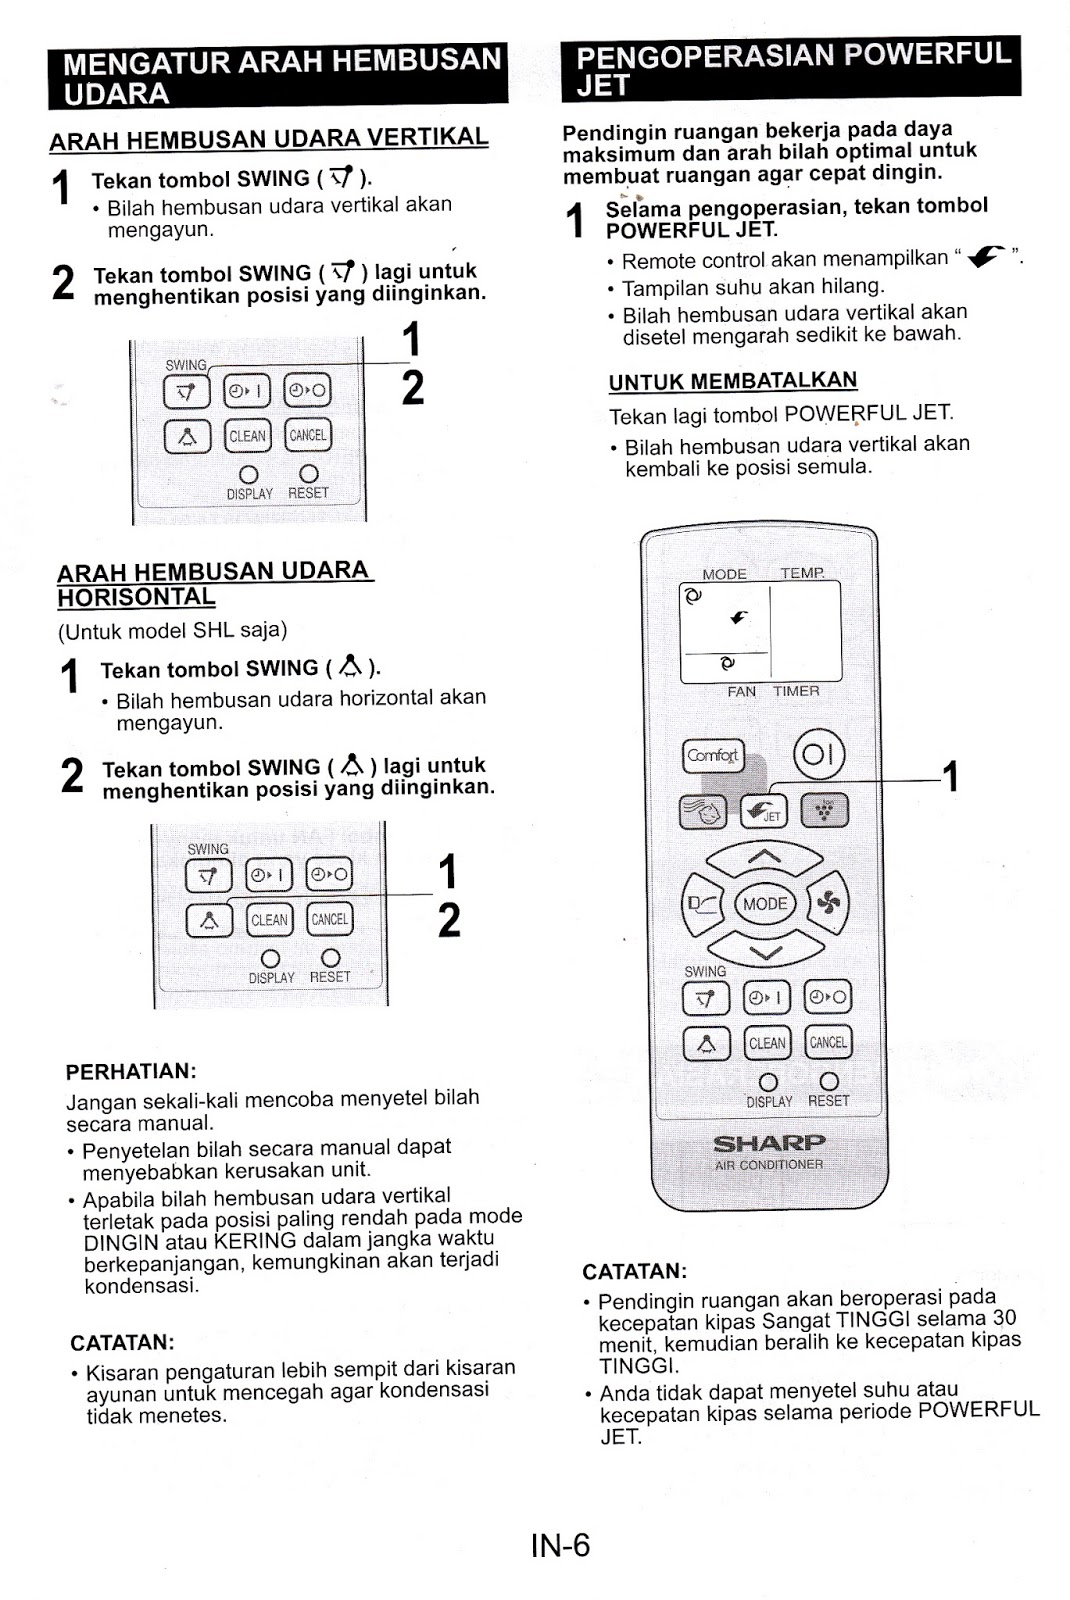 sharp split system air conditioner manual how to and user guide rh taxibermuda co manual book ac split daikin manual book ac split